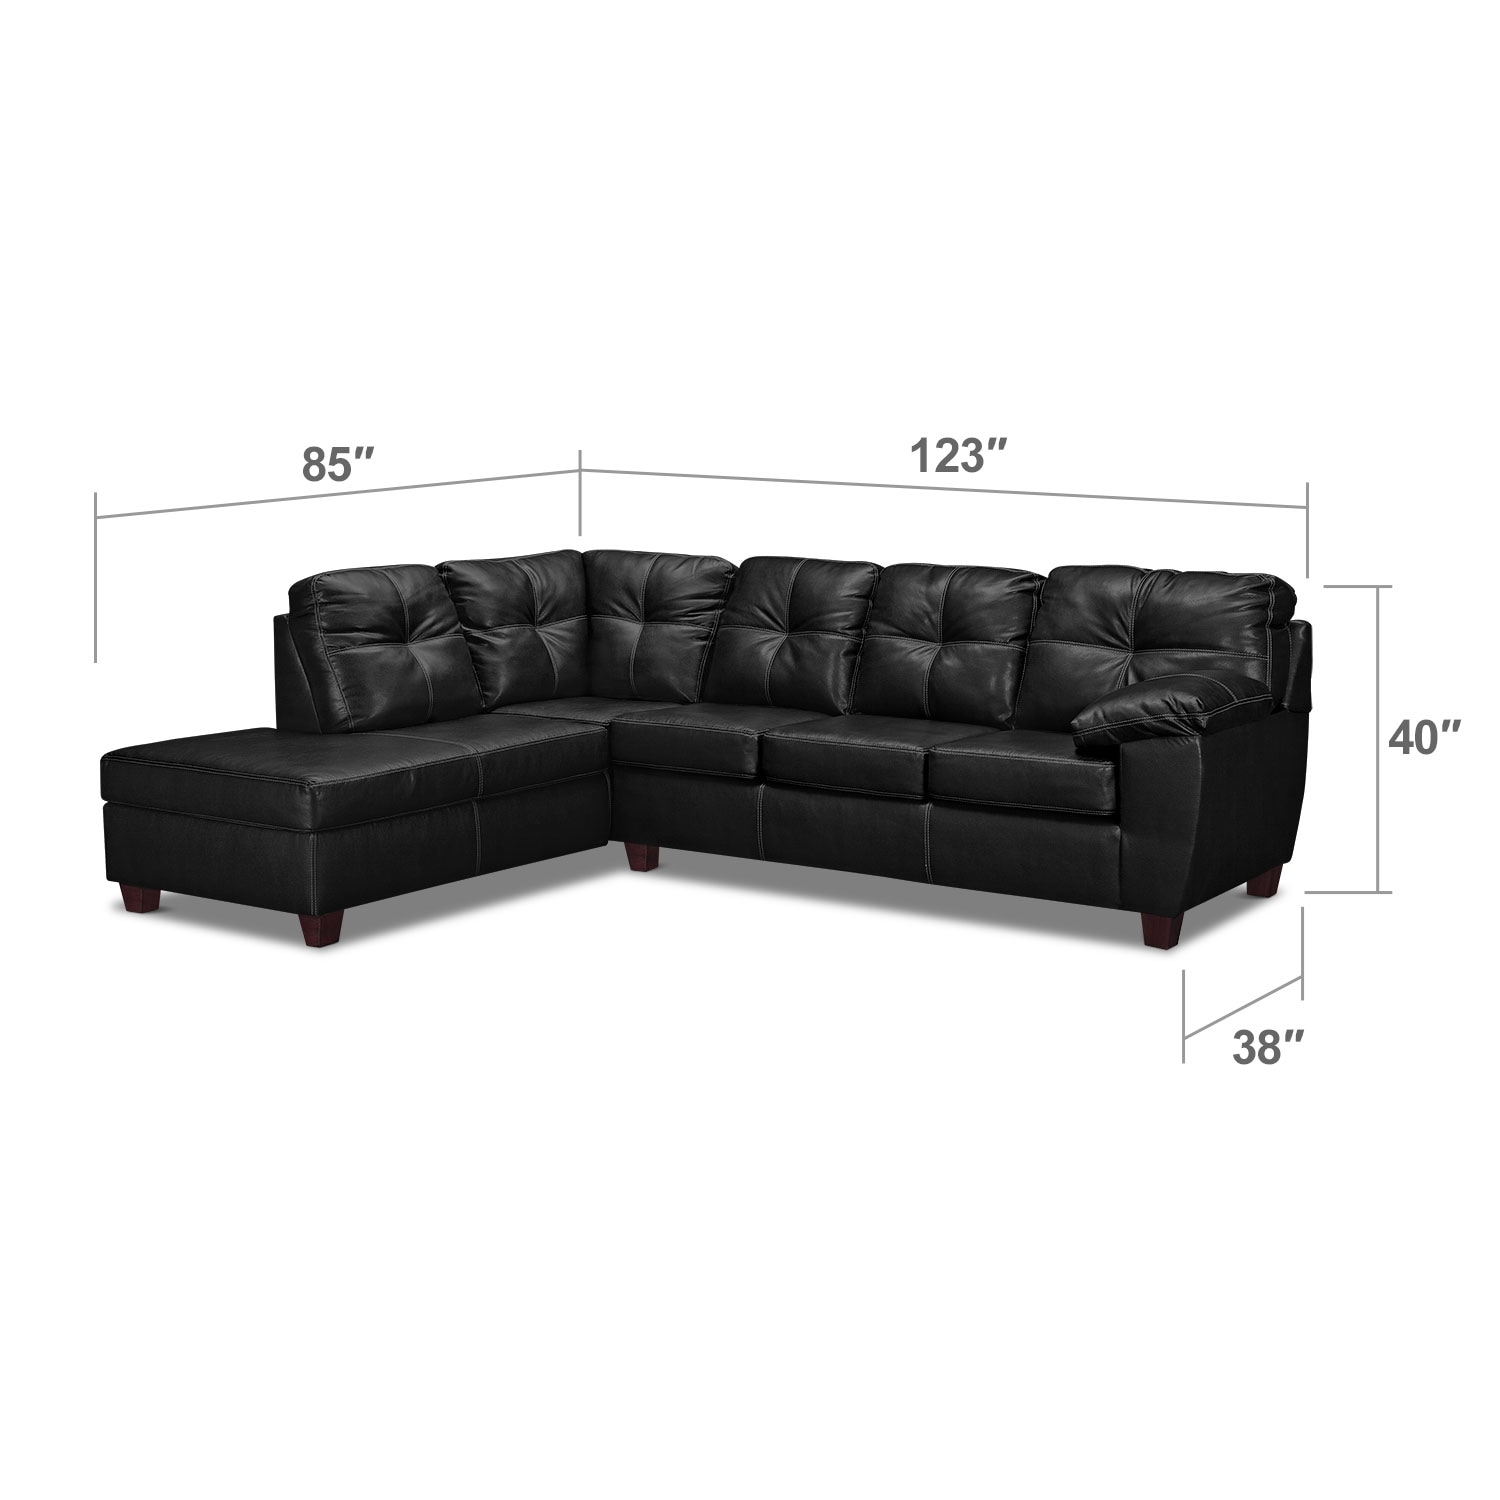 Living Room Furniture - Rialto Onyx 2 Pc. Sectional with Left-Facing Chaise